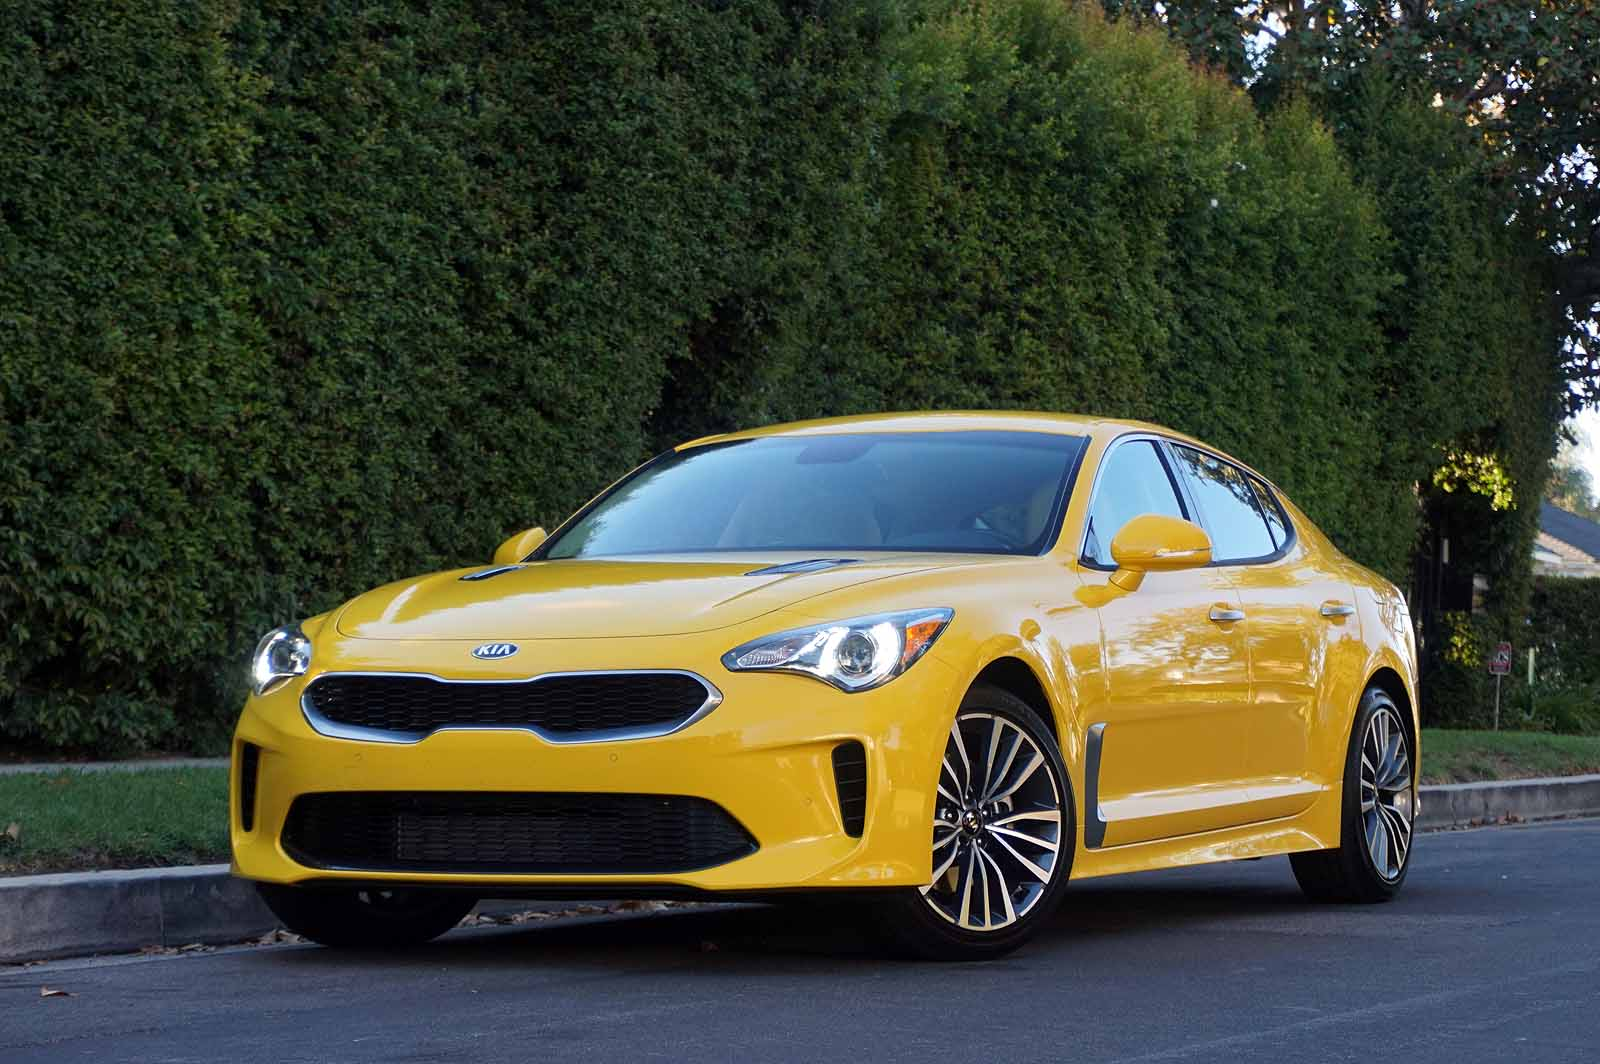 What People Are Saying About The 2018 Kia Stinger Sort Of